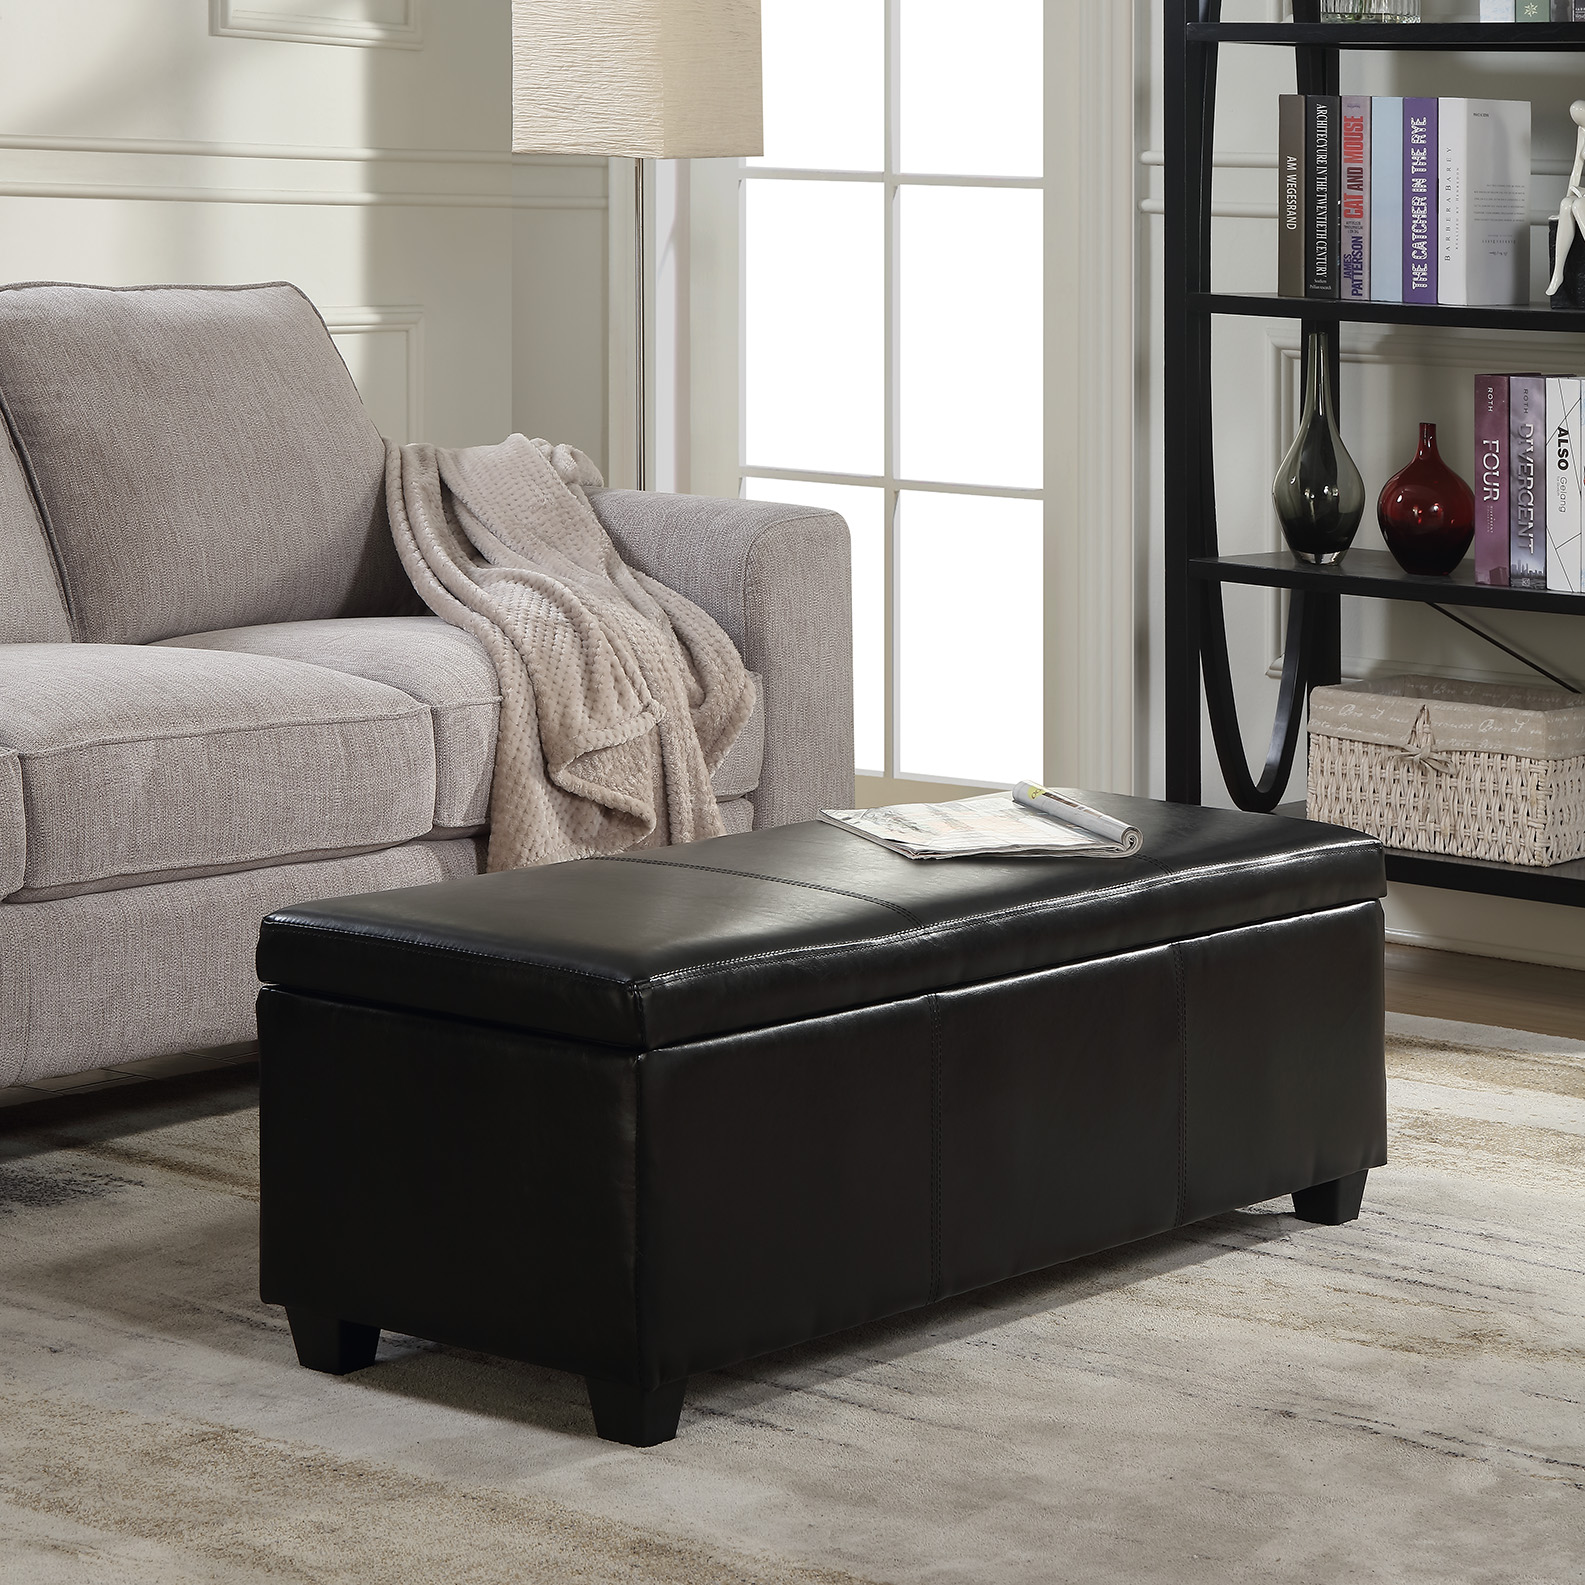 topped features tables table ottoman bench brownleatherottomantable leather top this coffee tray with brown storage center cushion for triple flippable